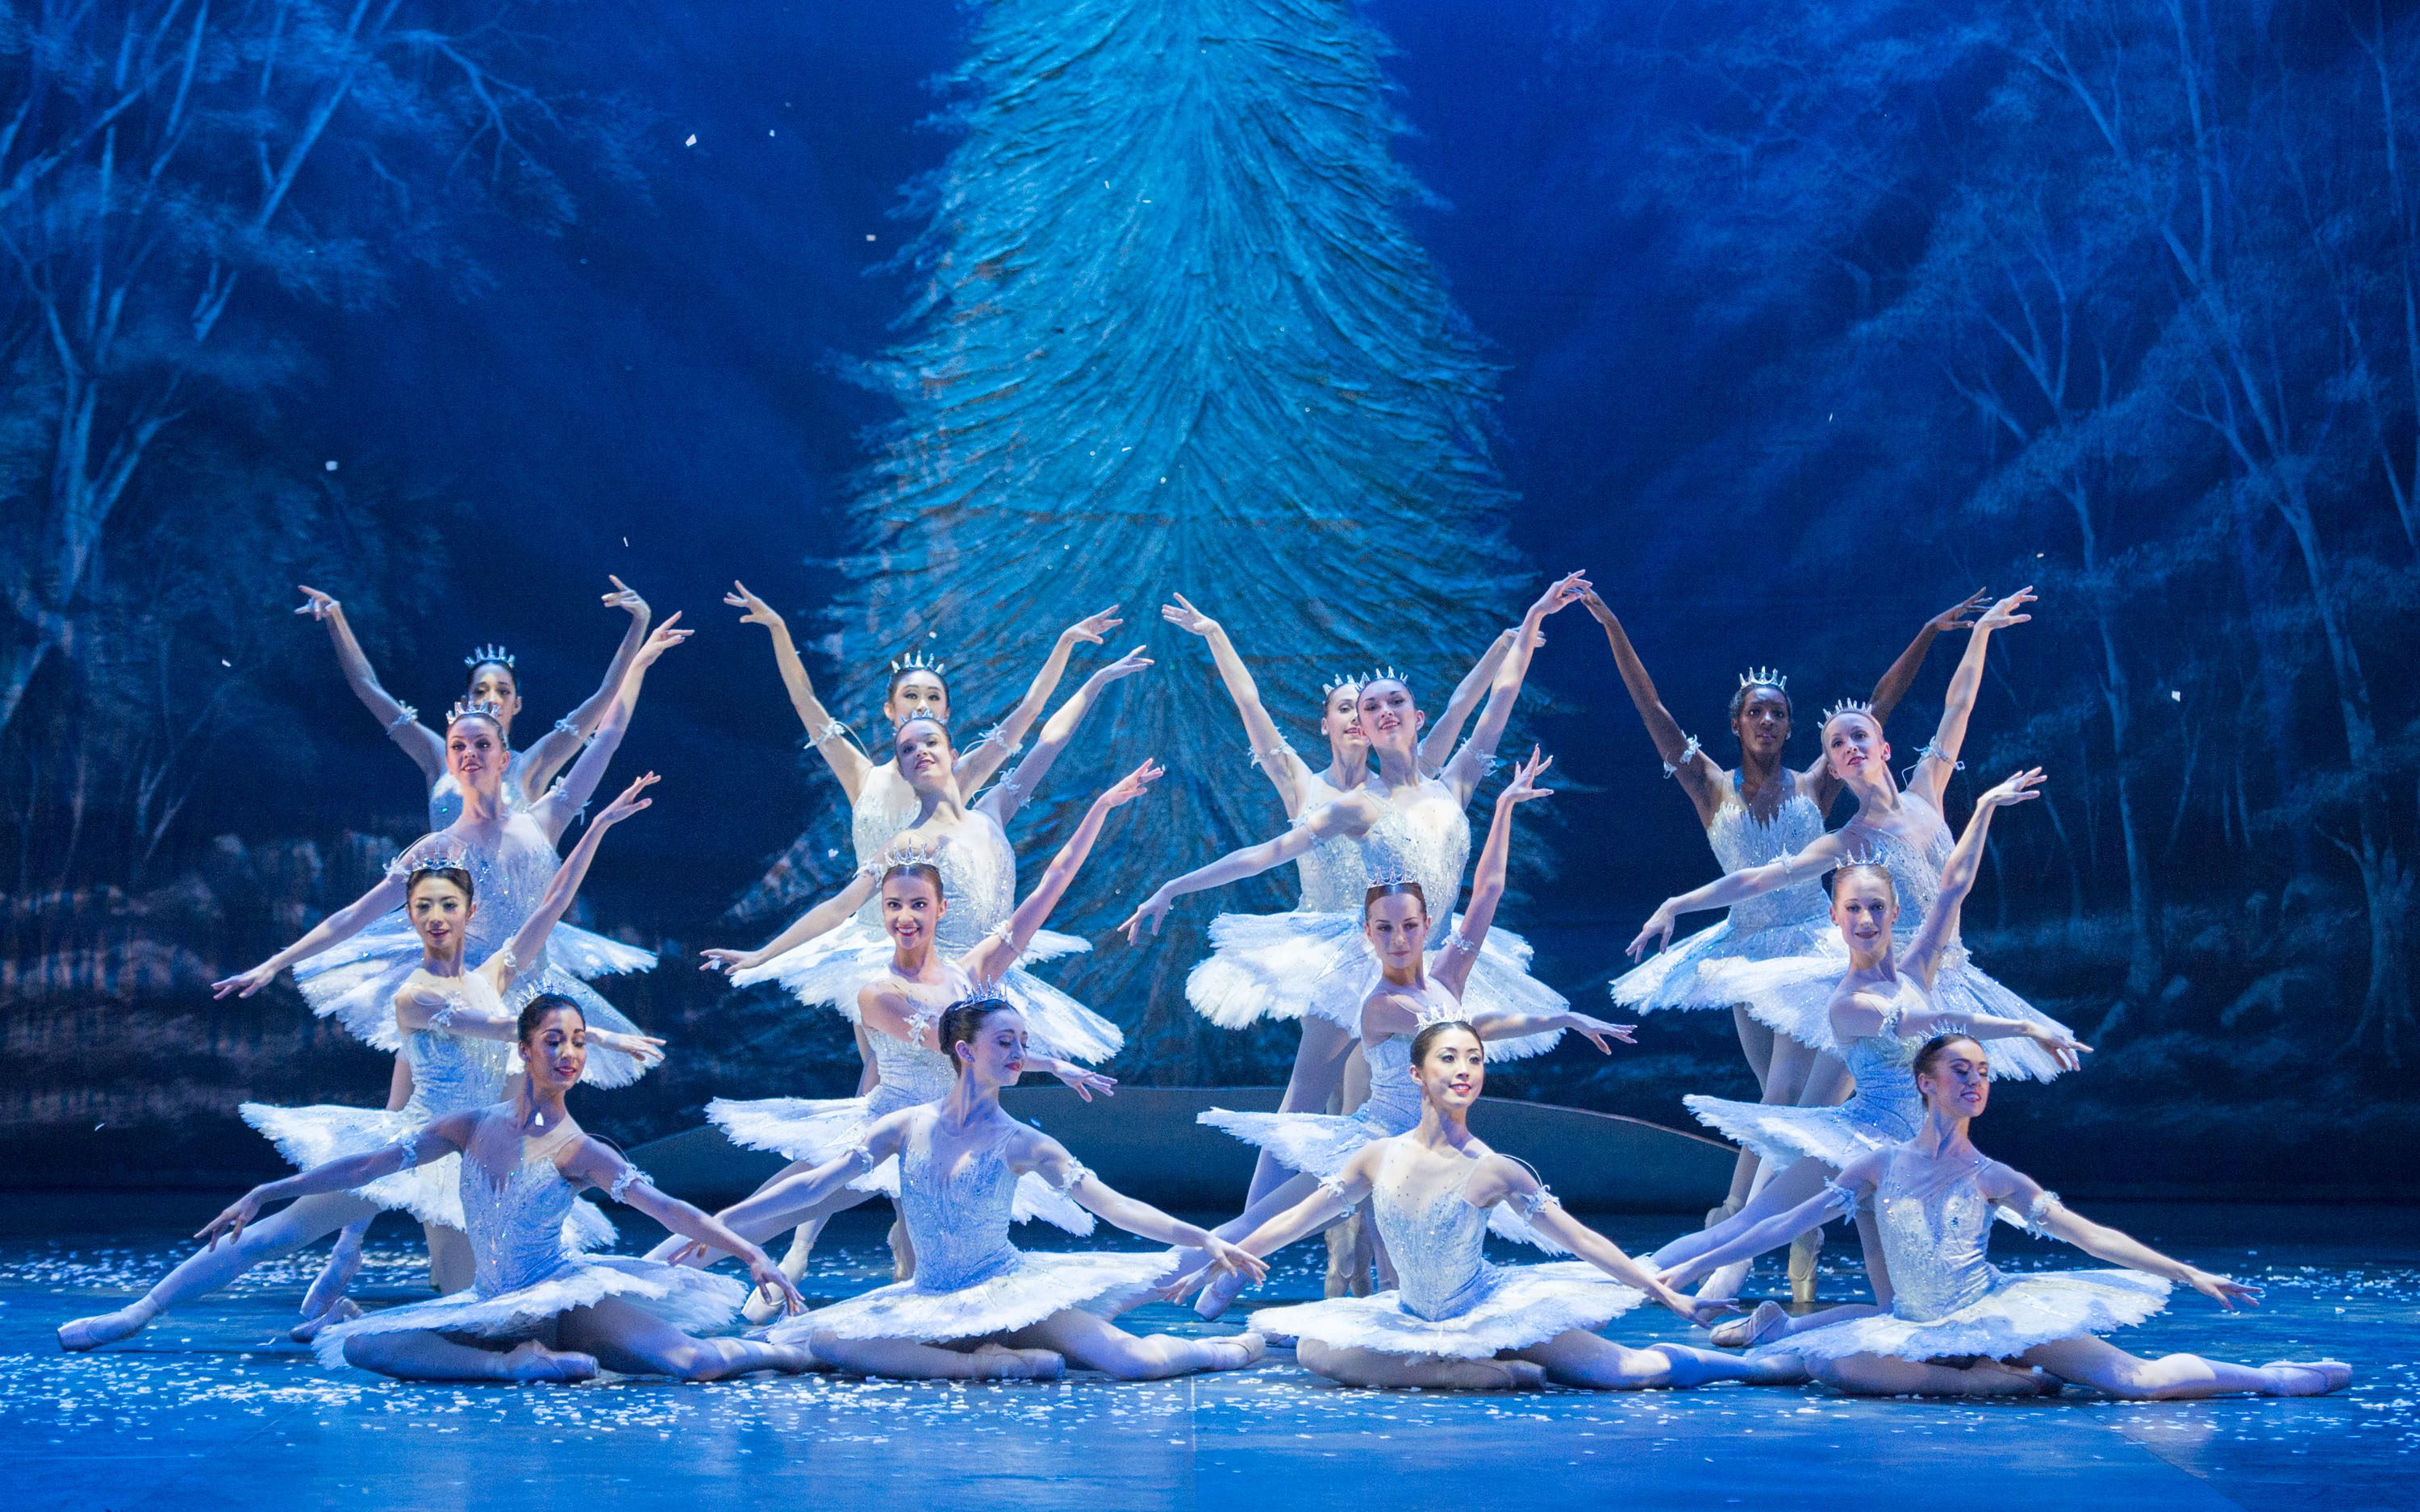 English National Ballet dancers as Snowflakes in Wayne Eagling's Nutcracker.